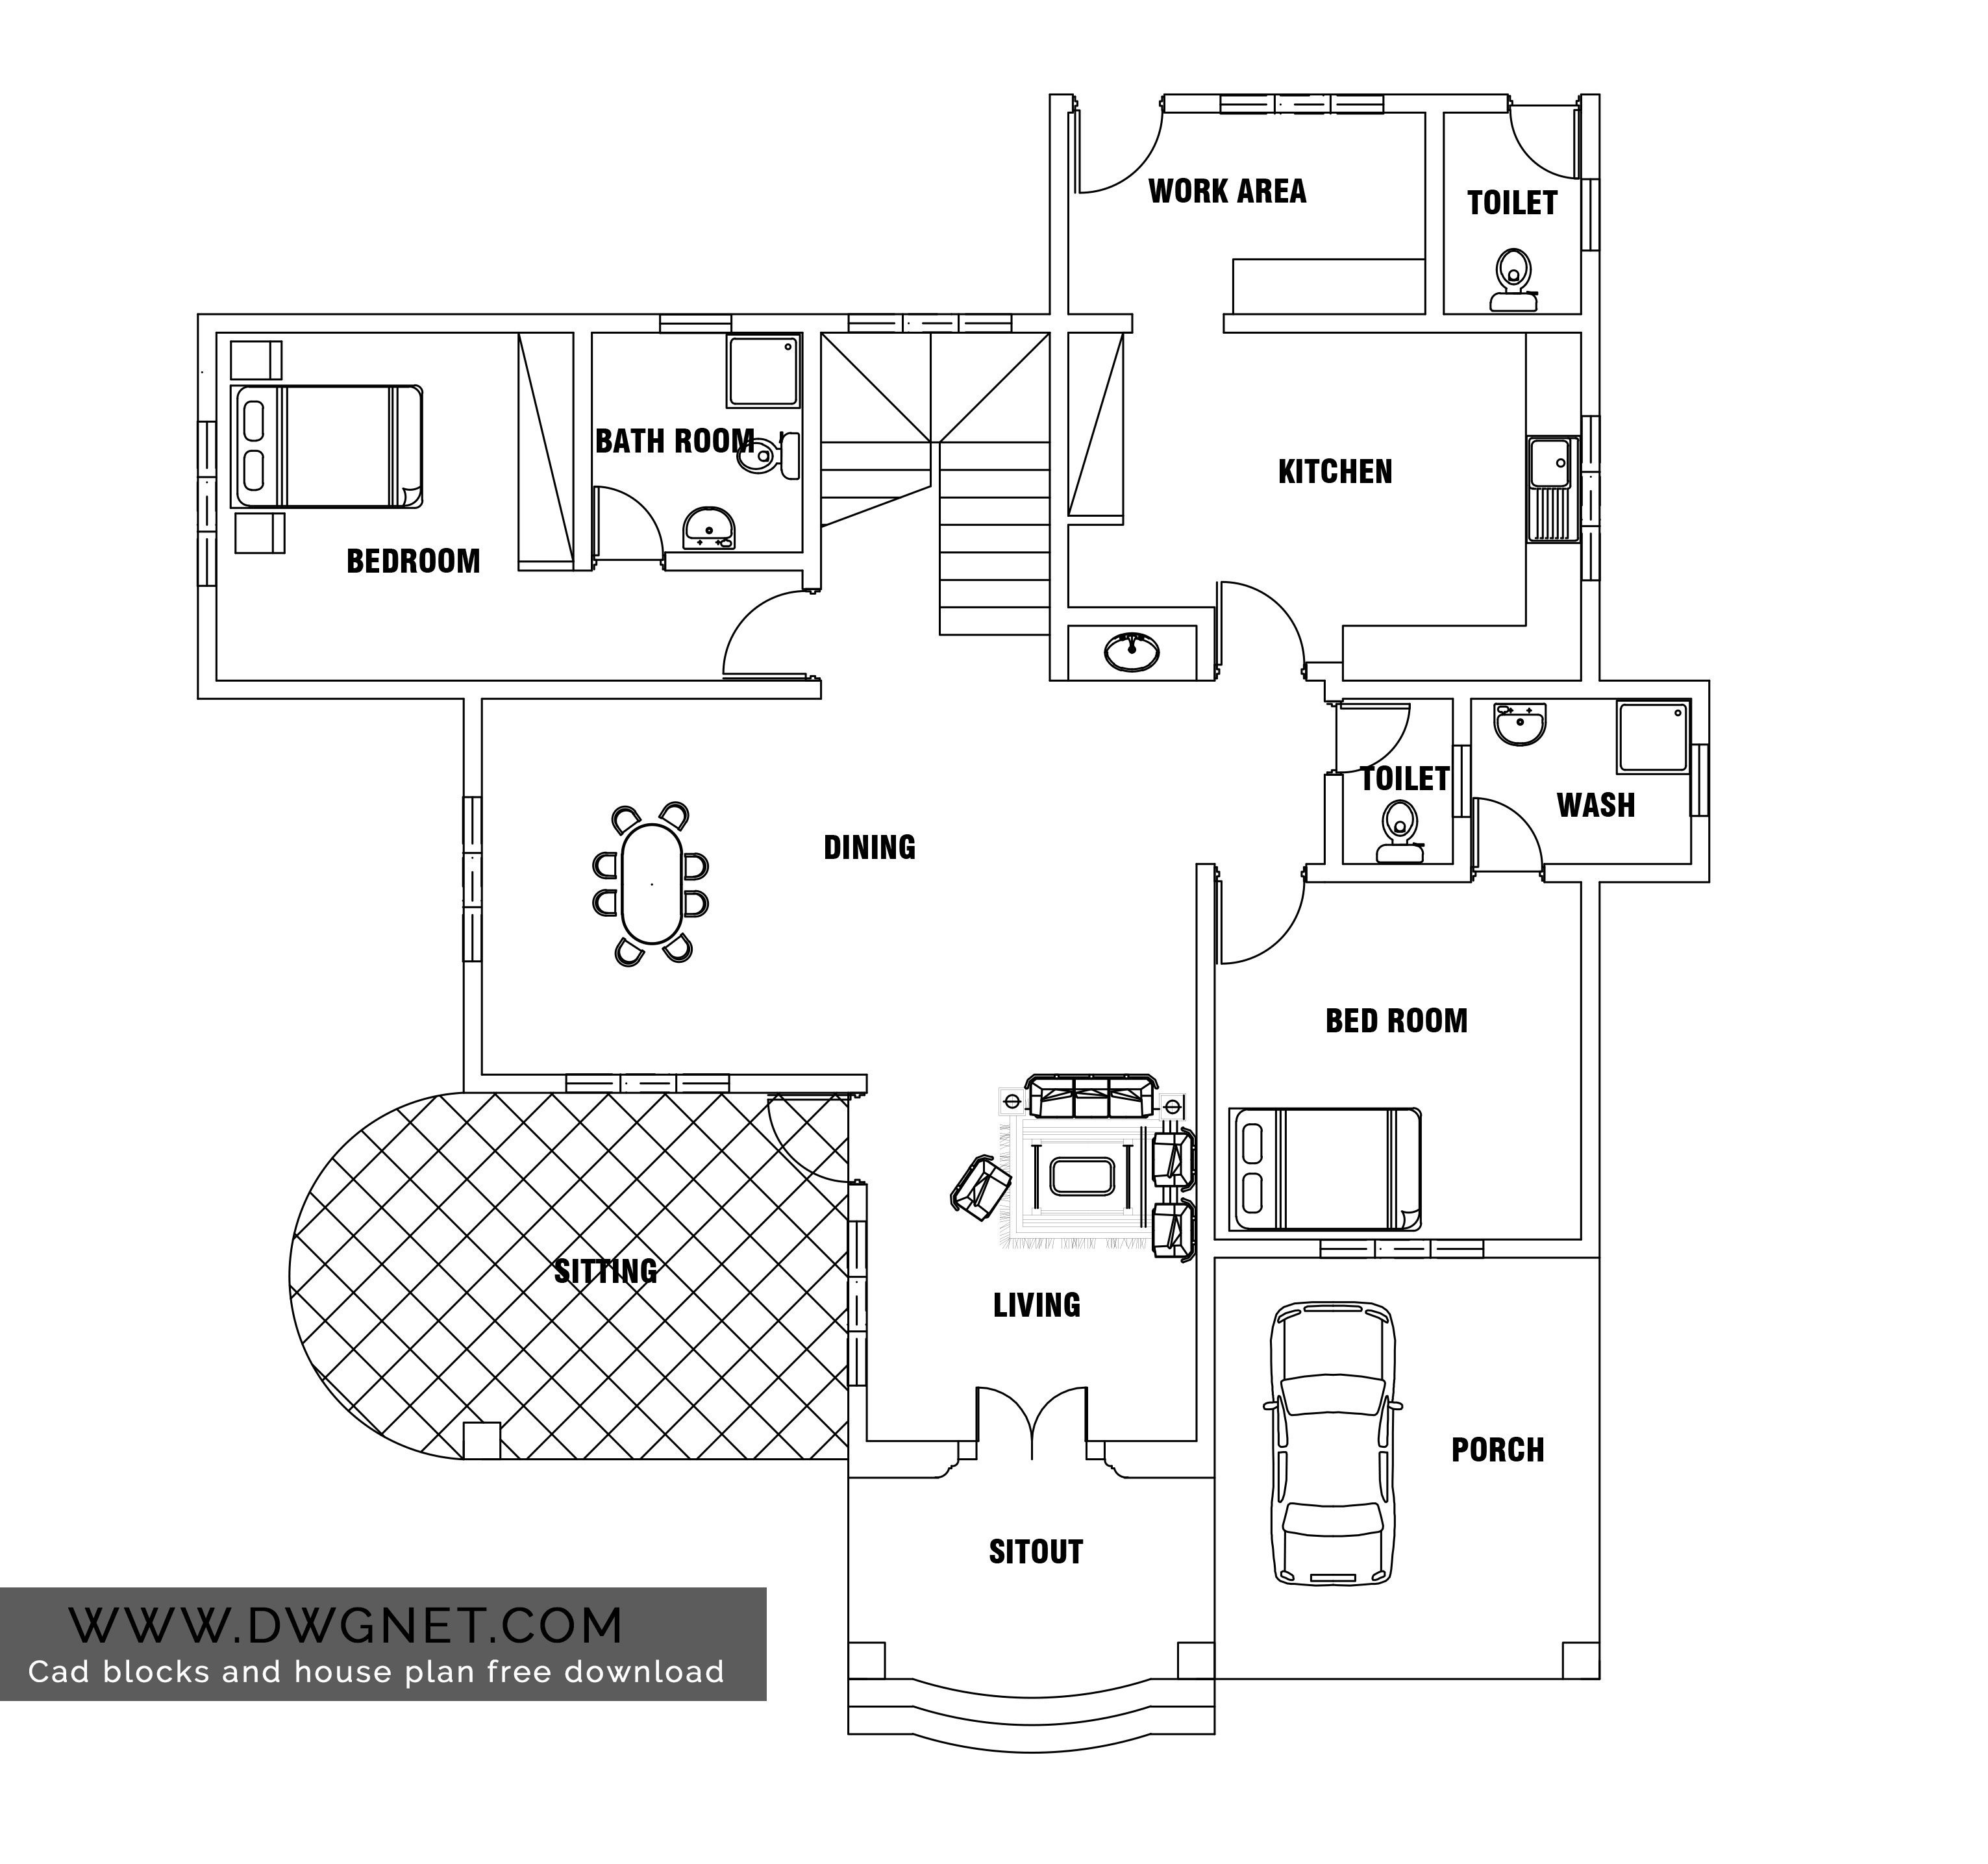 Free building plans in autocad format house plan autocad for House plan cad file